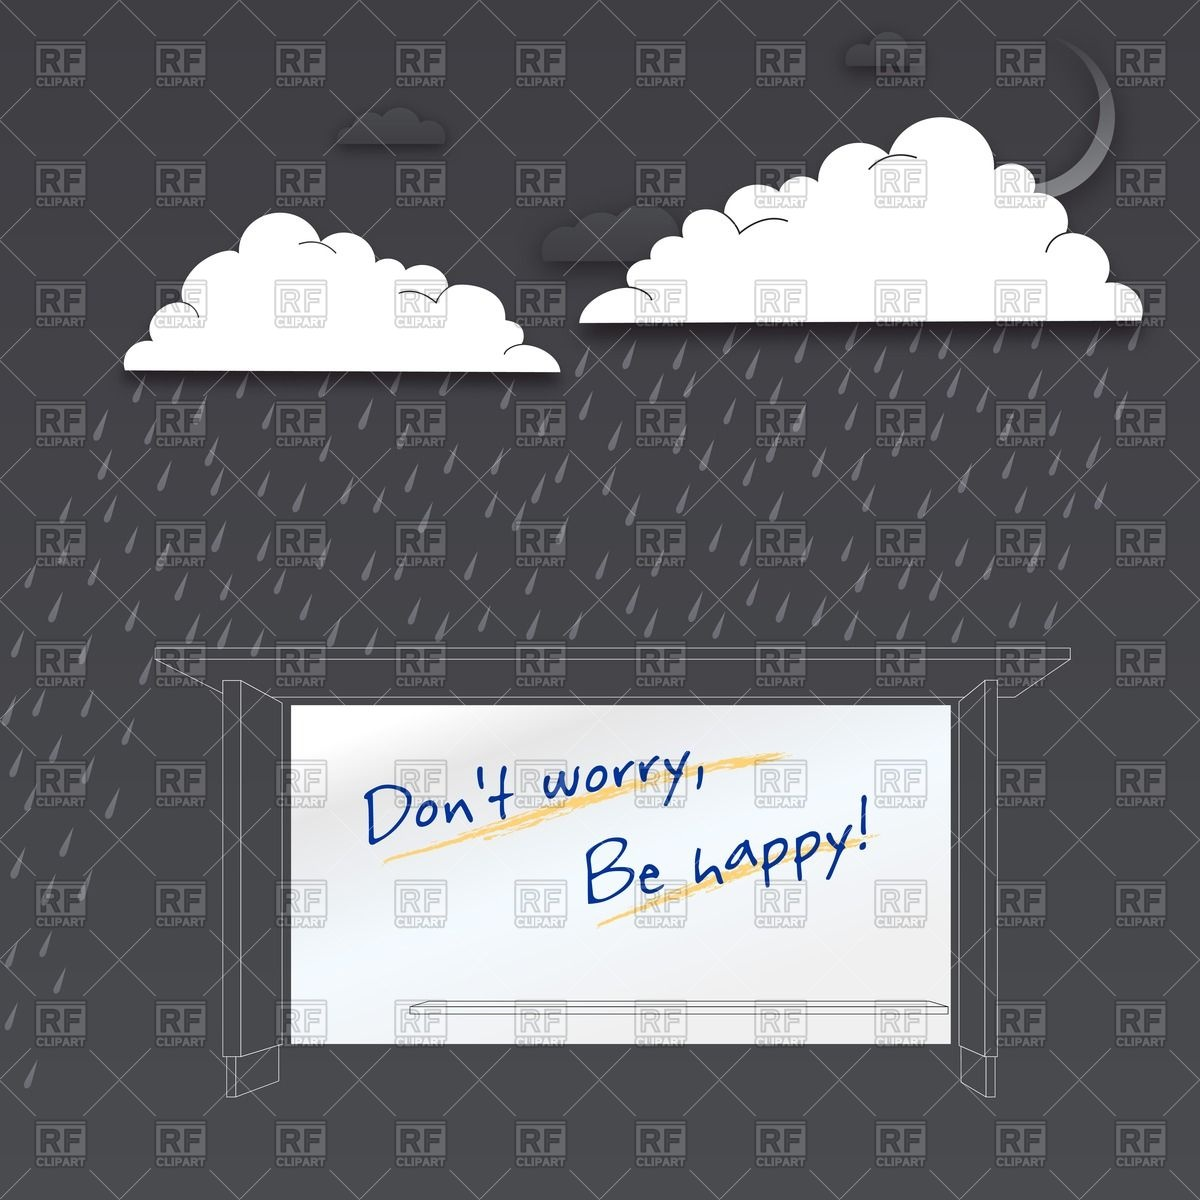 Shelter In The Rainy Night Download Royalty Free Vector Clipart  Eps